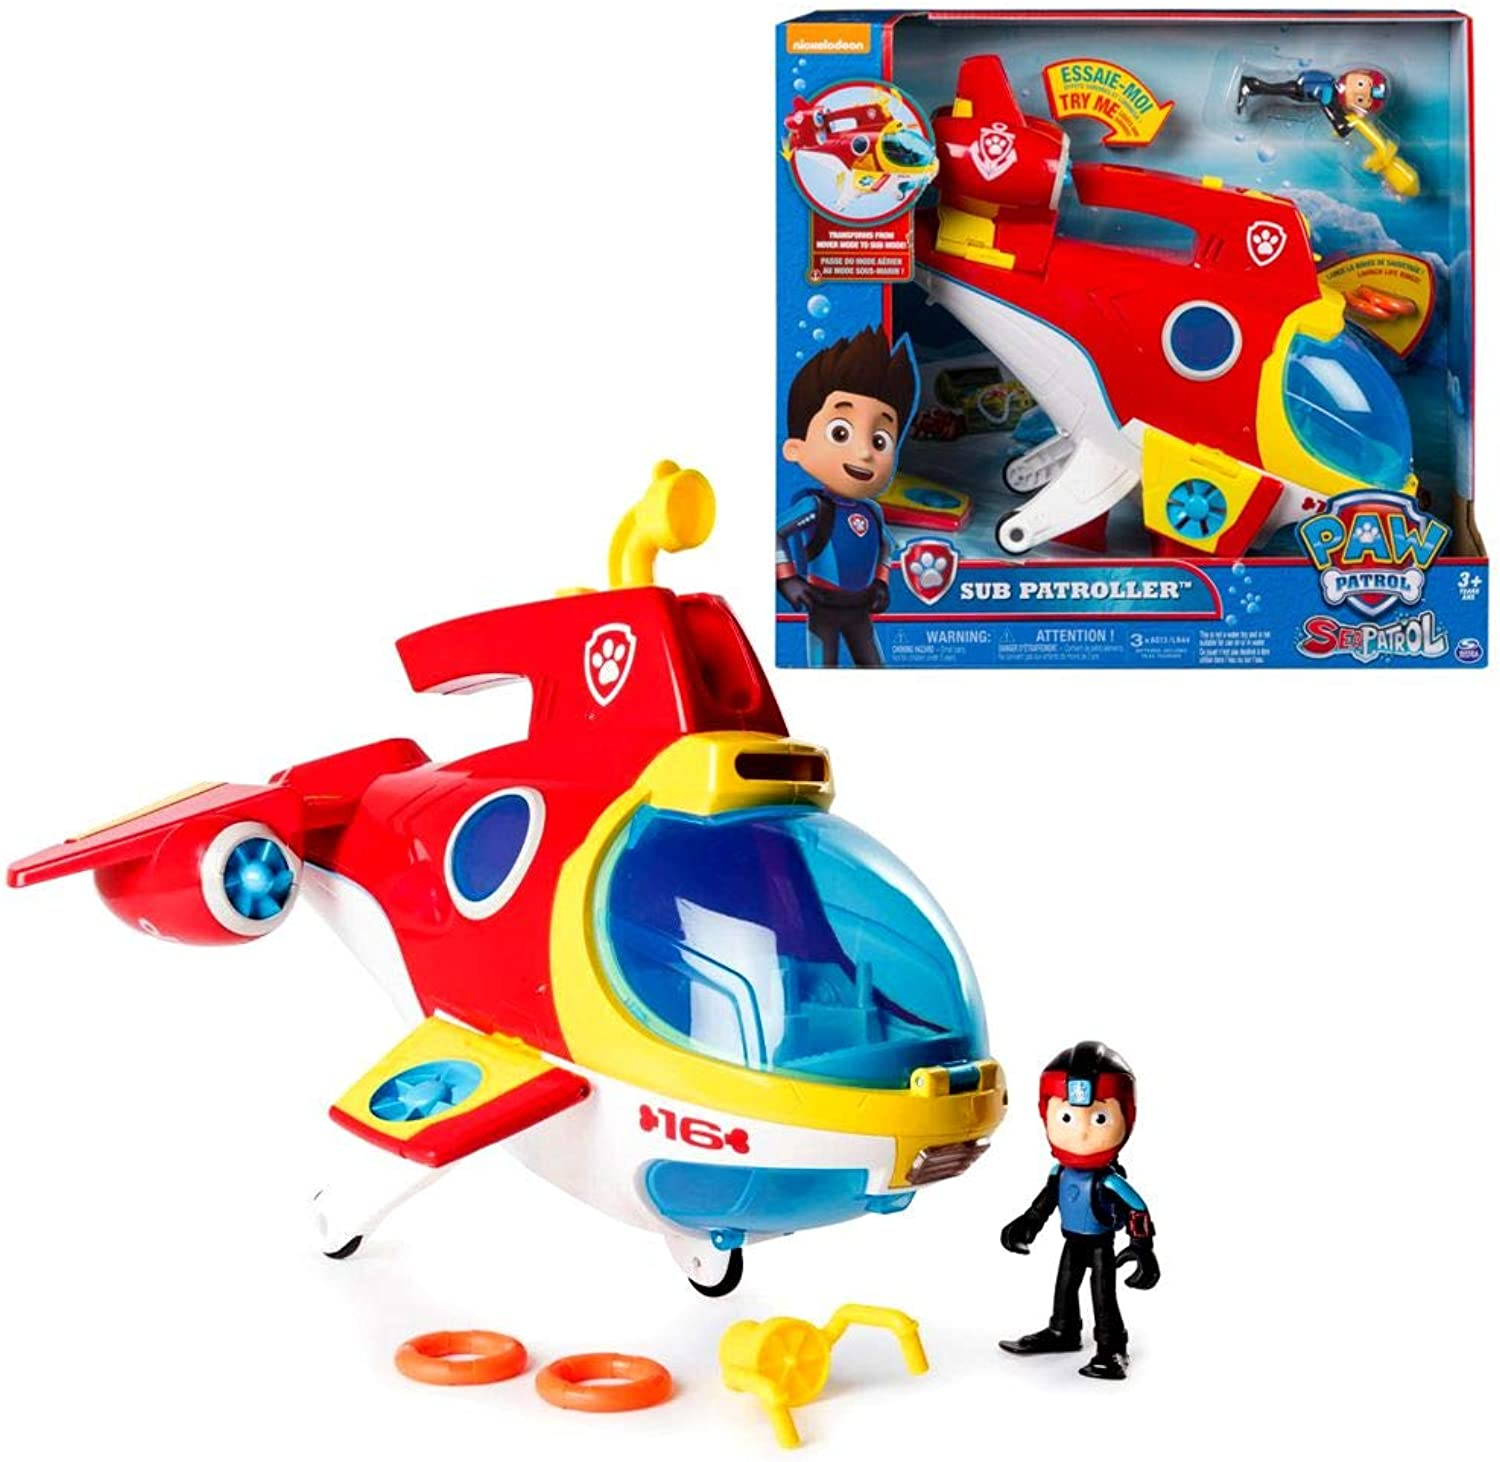 Spin Master Sea Patrol   Sub Patroller Vehicle with Light & Sound   Paw Patrol